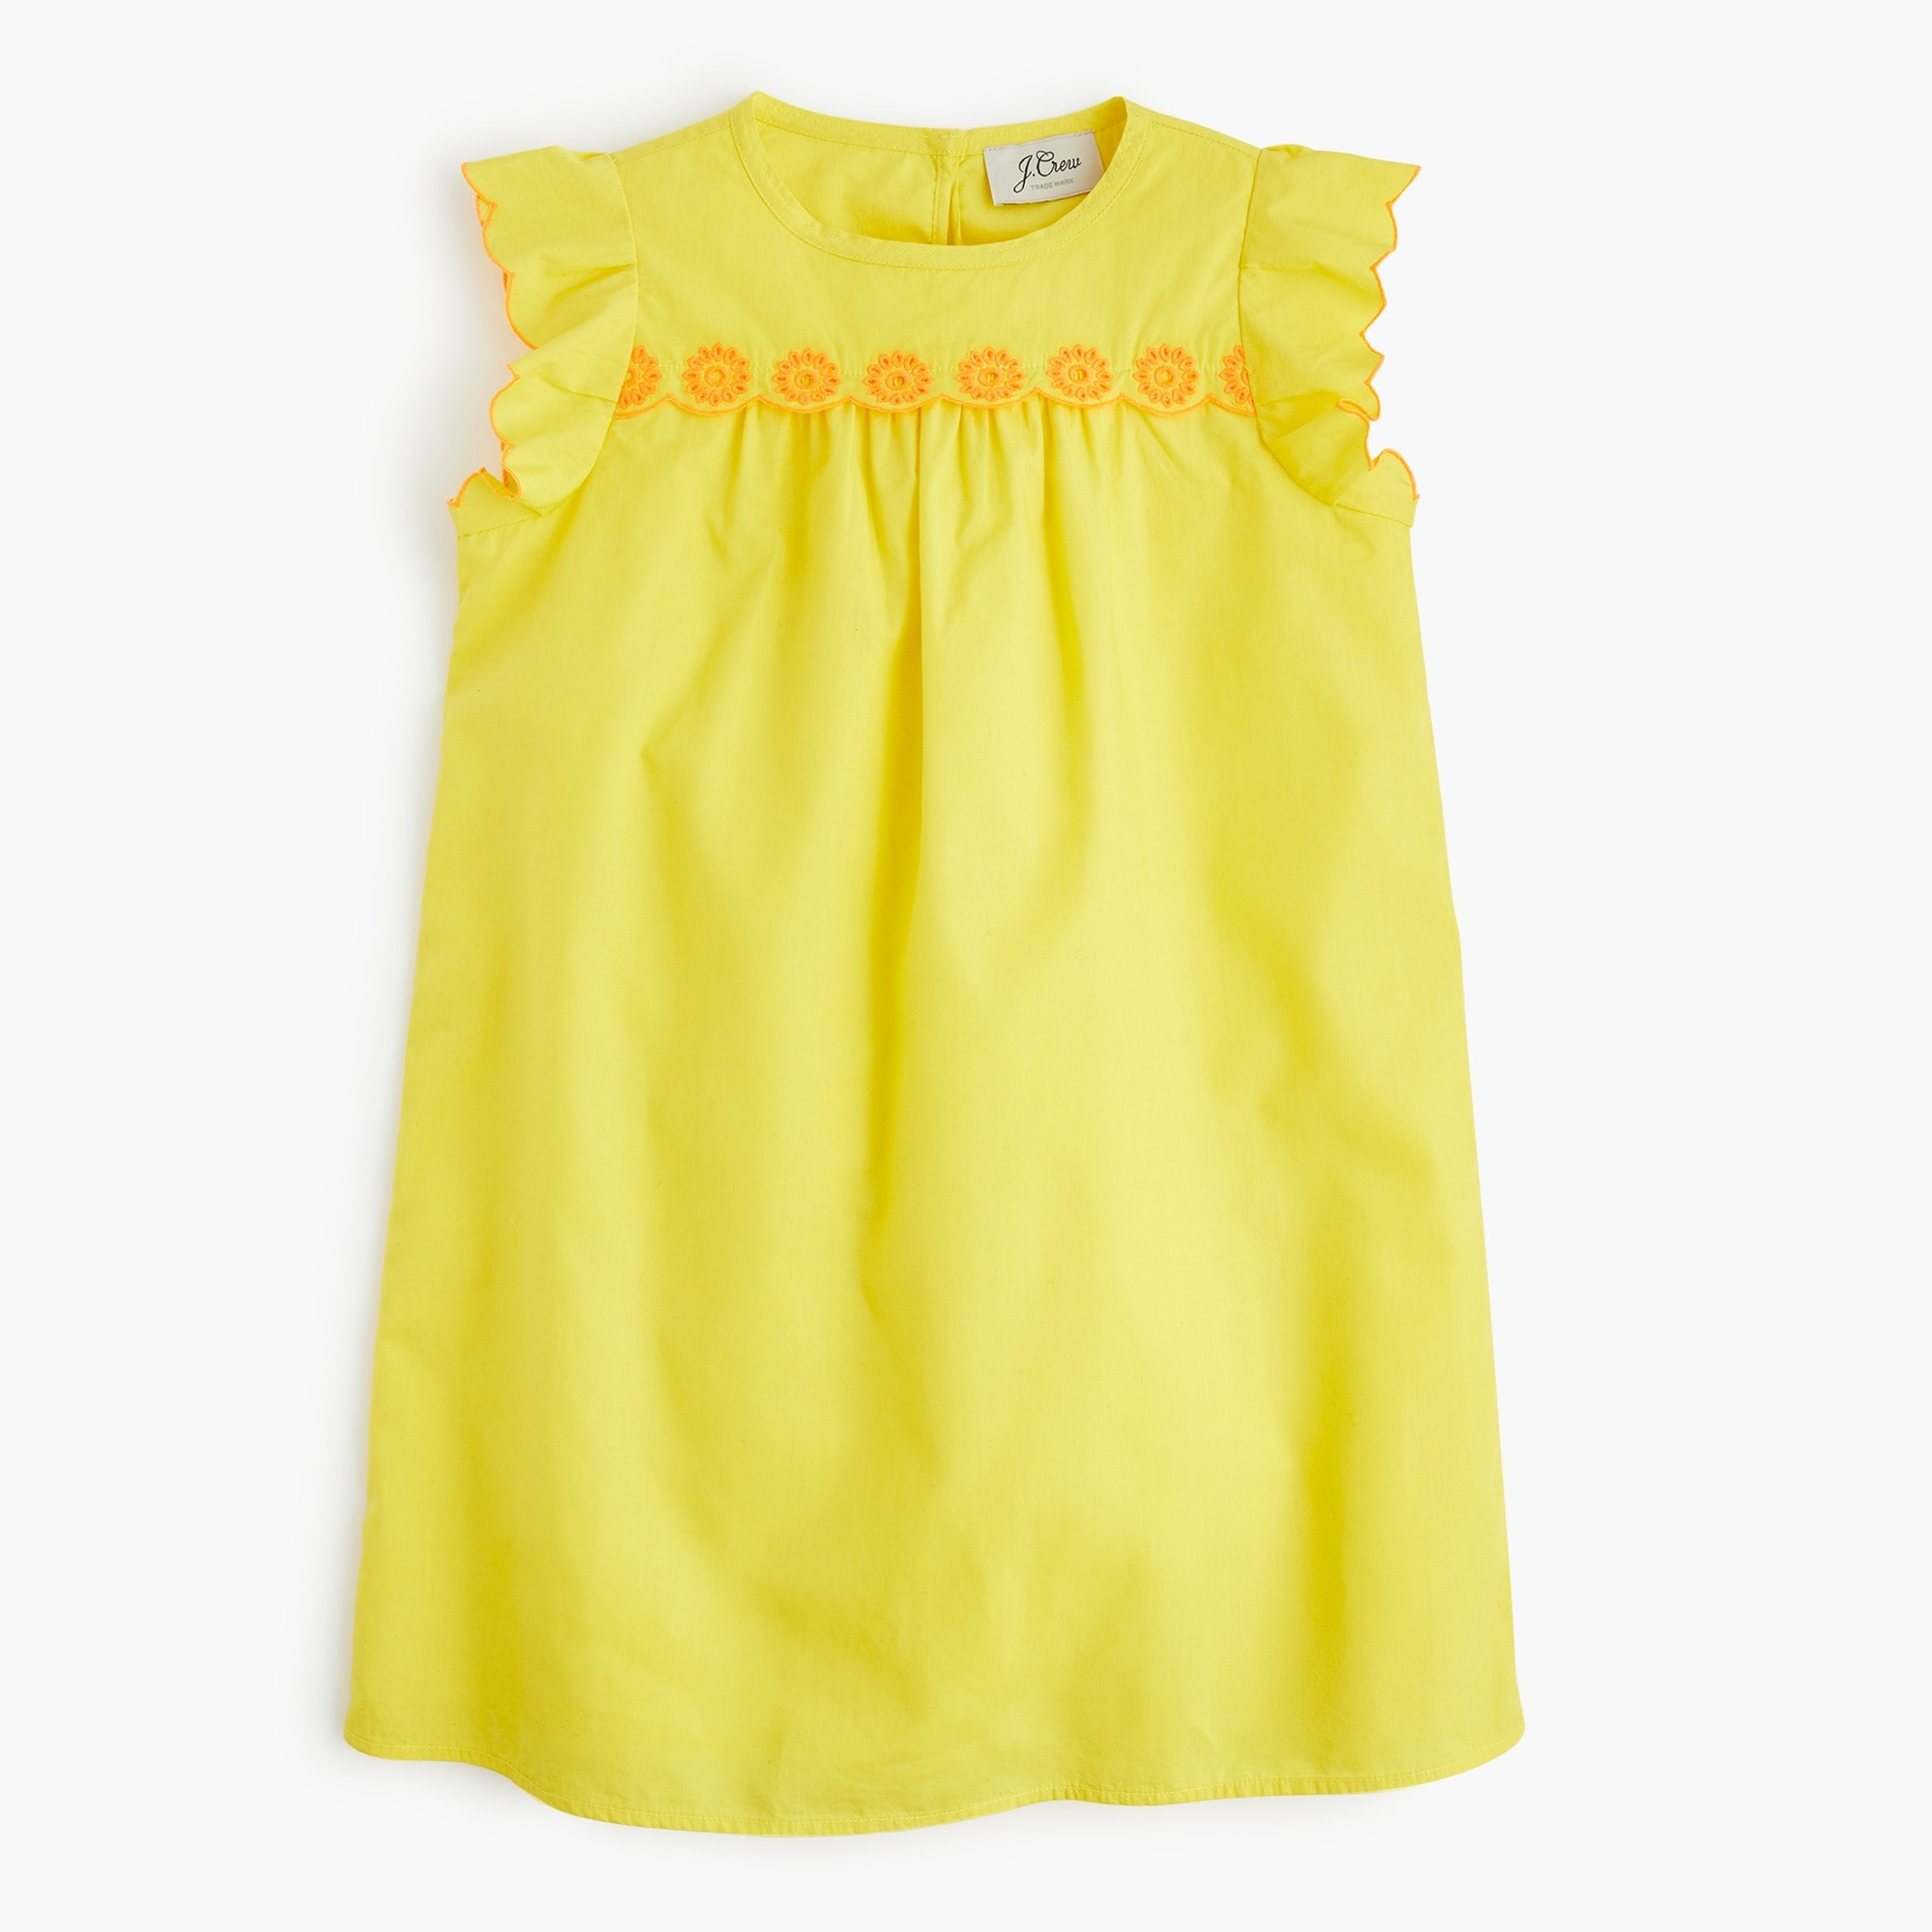 Girls' scallop-trimmed dress girl new arrivals c